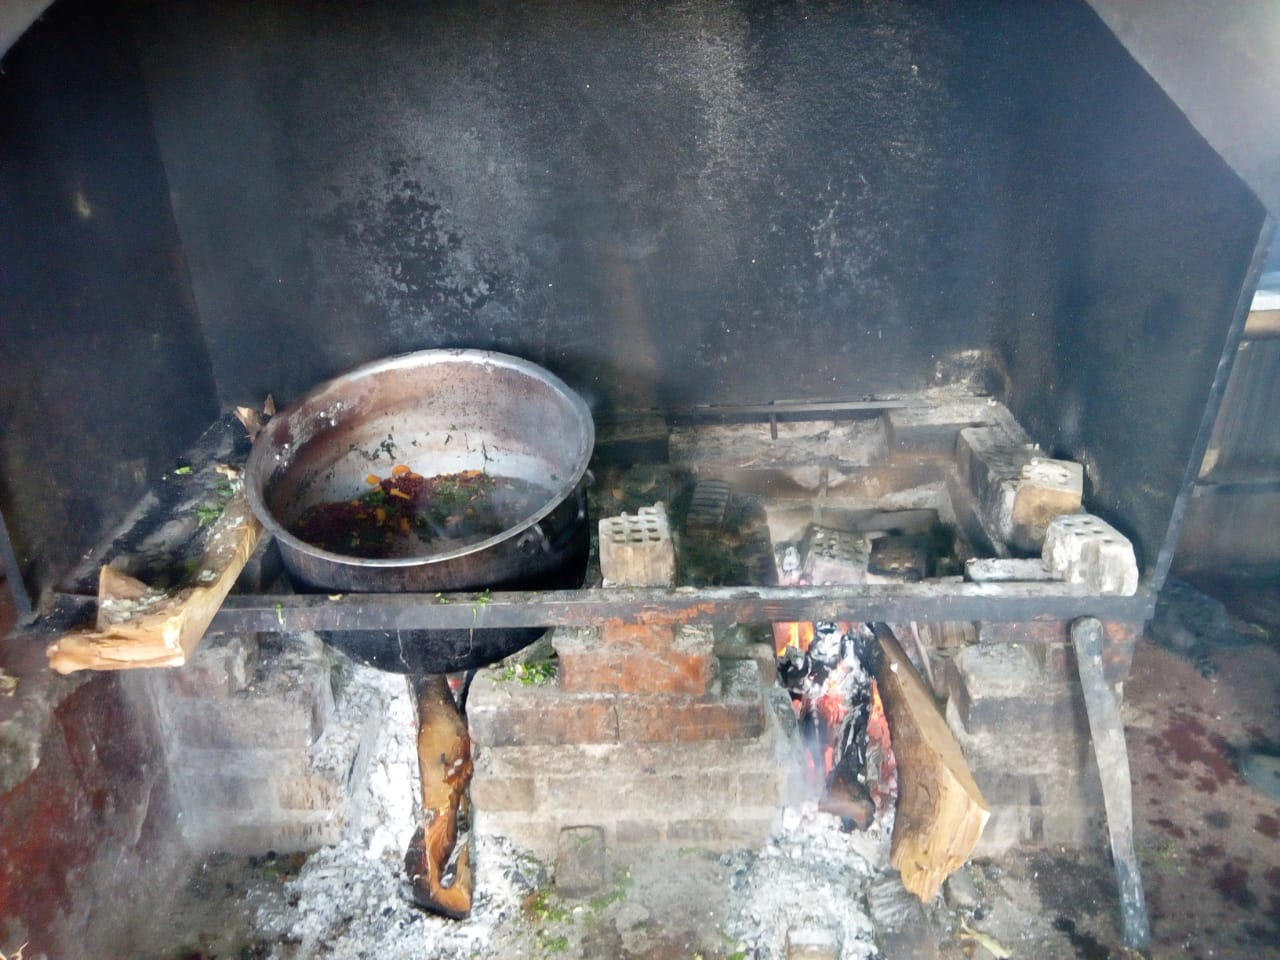 The current cooker is an open fire with a metal frame above it with pots standing on it, within a brick fireplace.